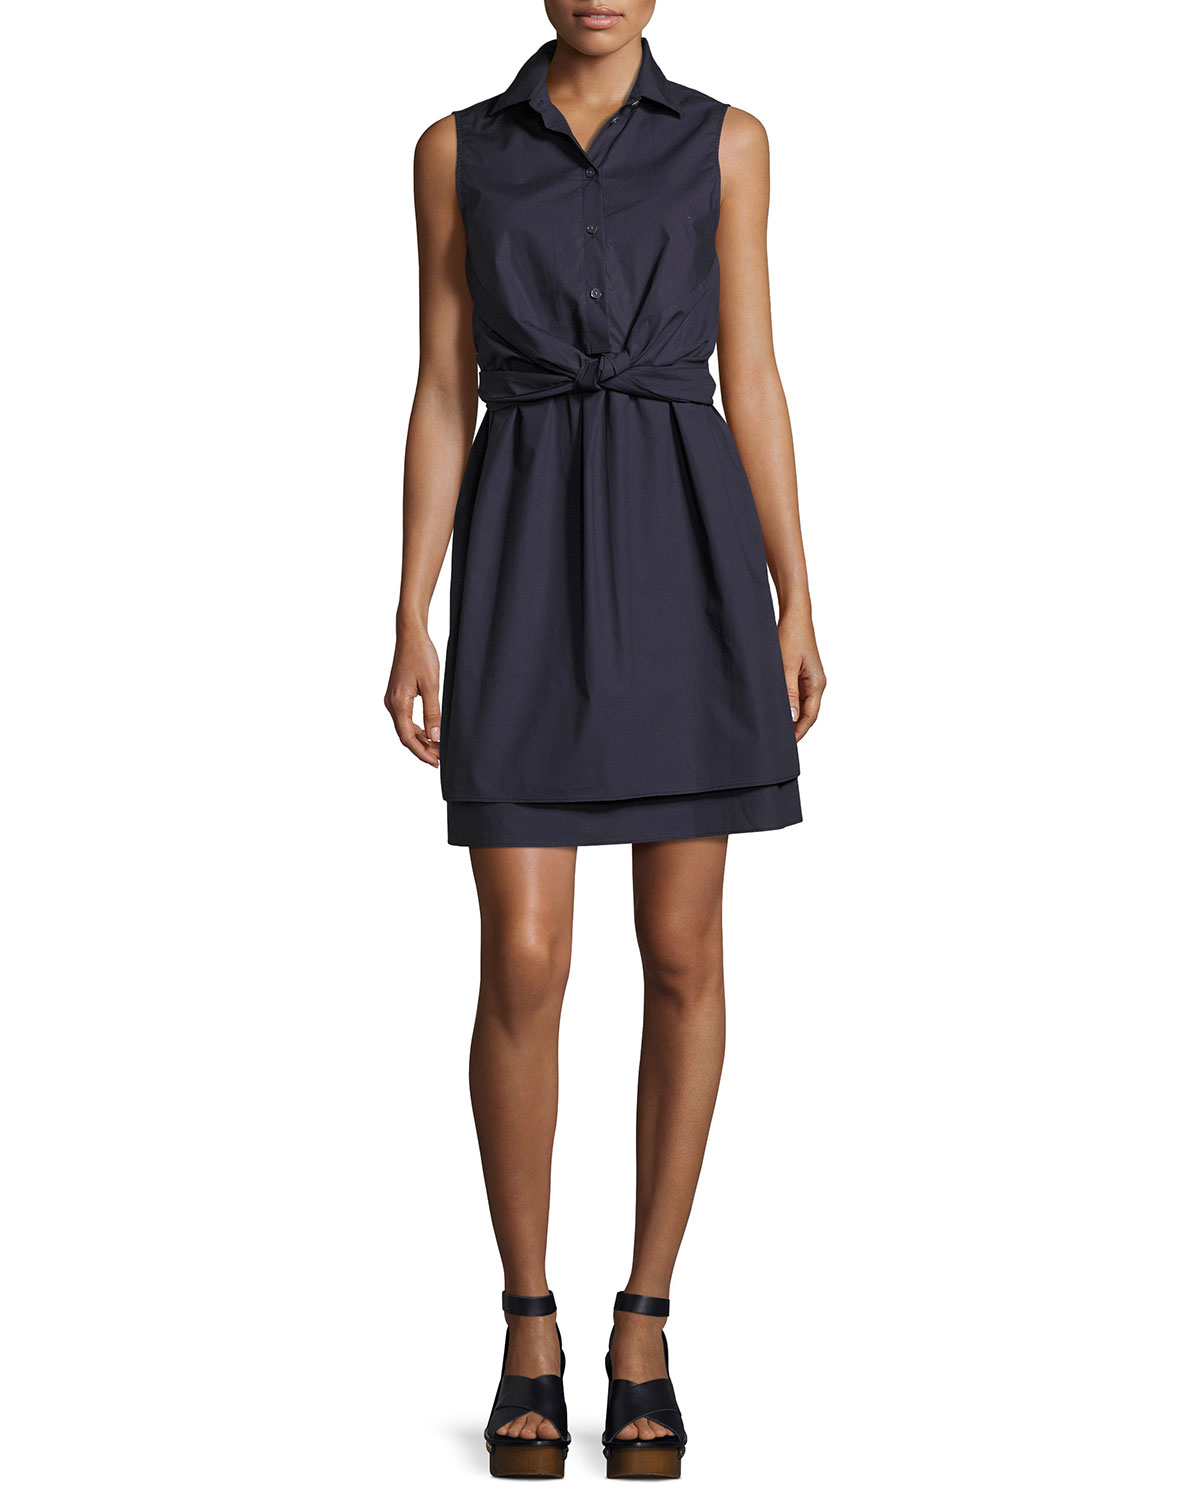 337a2a22671fc3 Derek Lam 10 Crosby Sleeveless Tied Poplin Shirtdress